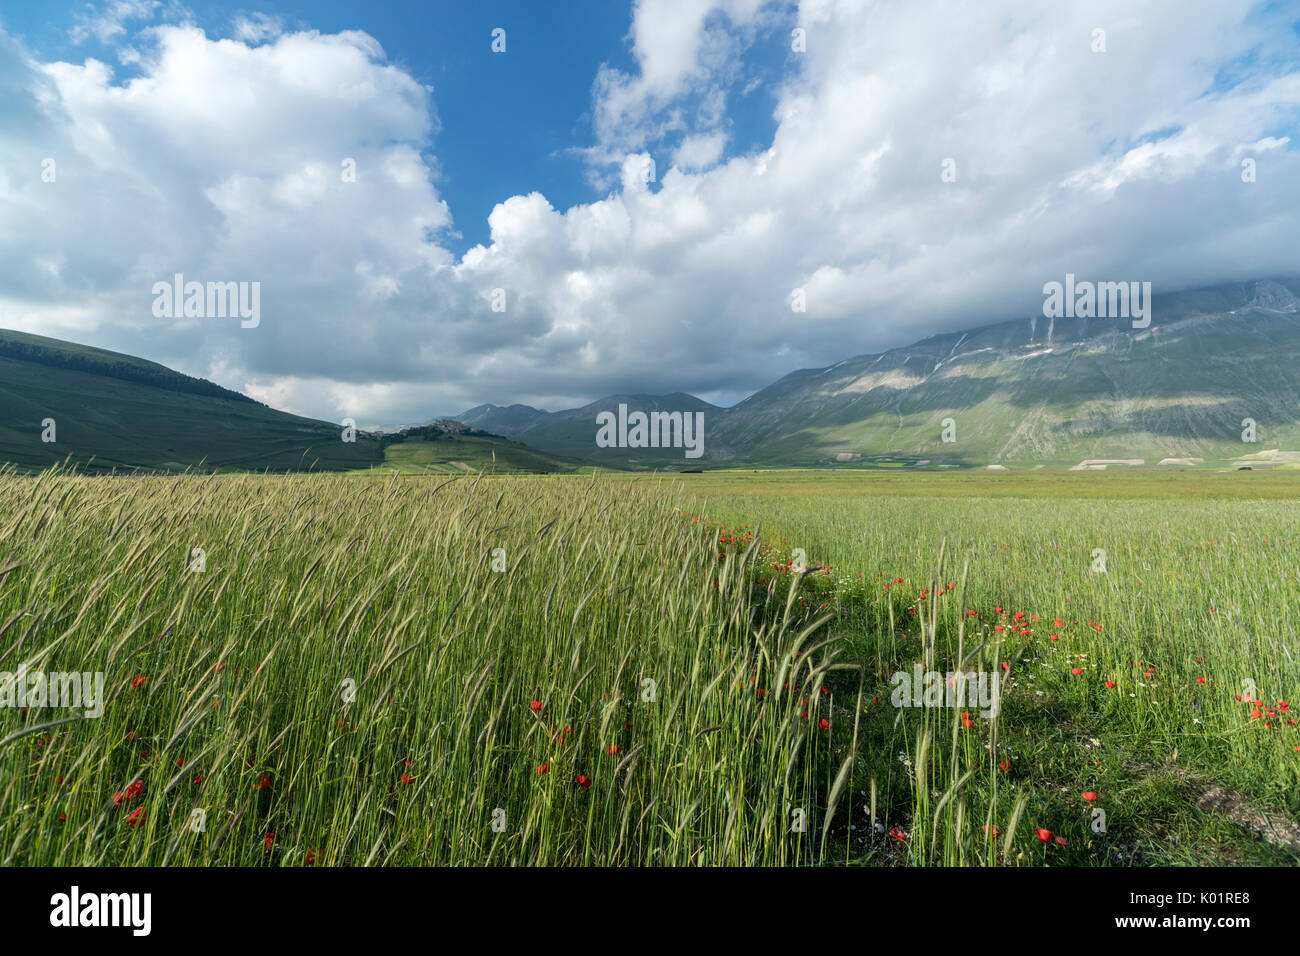 Green fields of ears of corn frame the medieval village Castelluccio di Norcia Province of Perugia Umbria Italy Europe - Stock Image